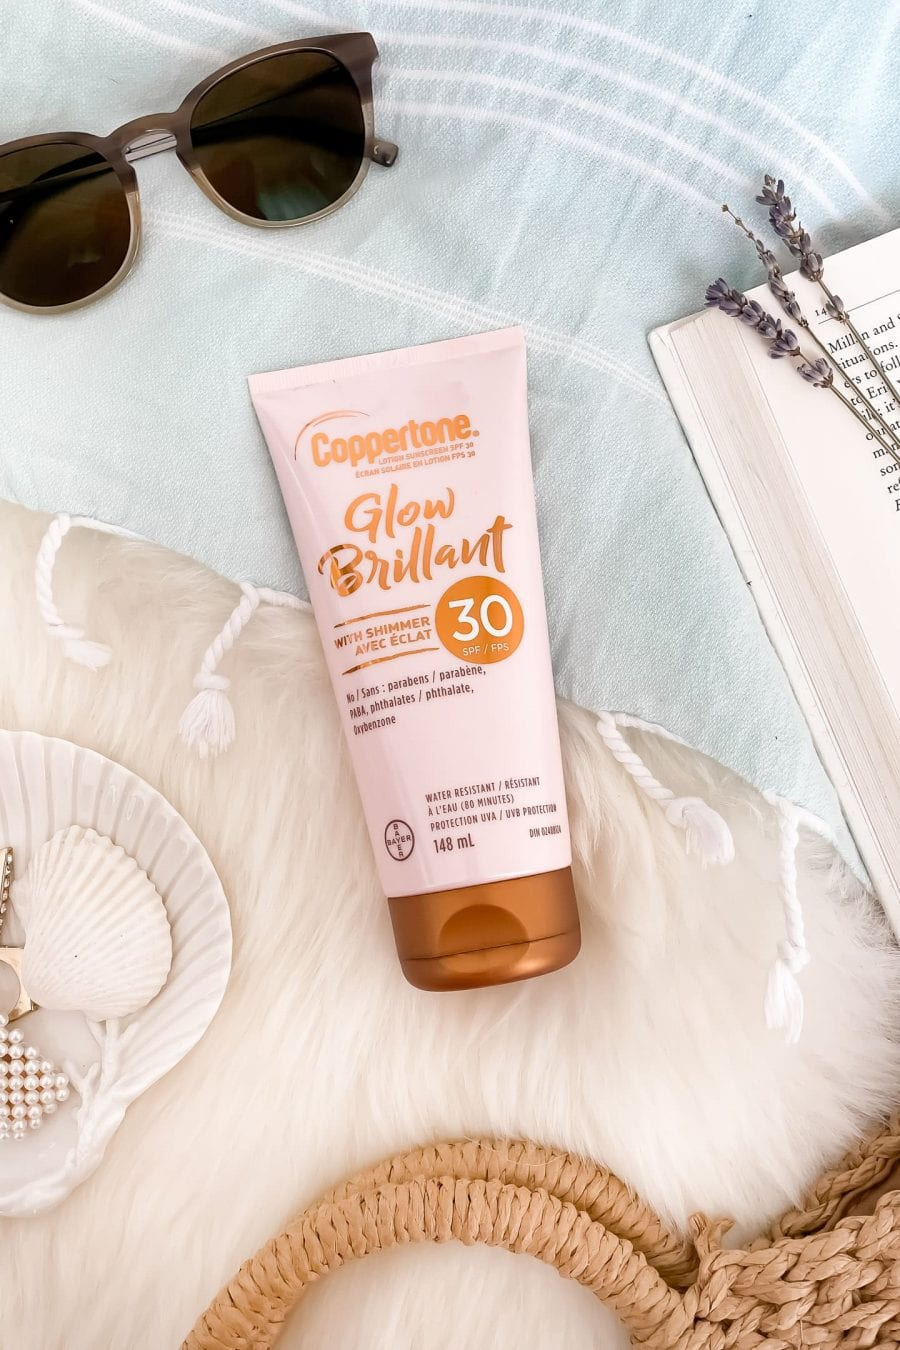 Best sunscreen for body - The Coppertone sunscreen has a bit of with shimmer which gives your body an extra glow!